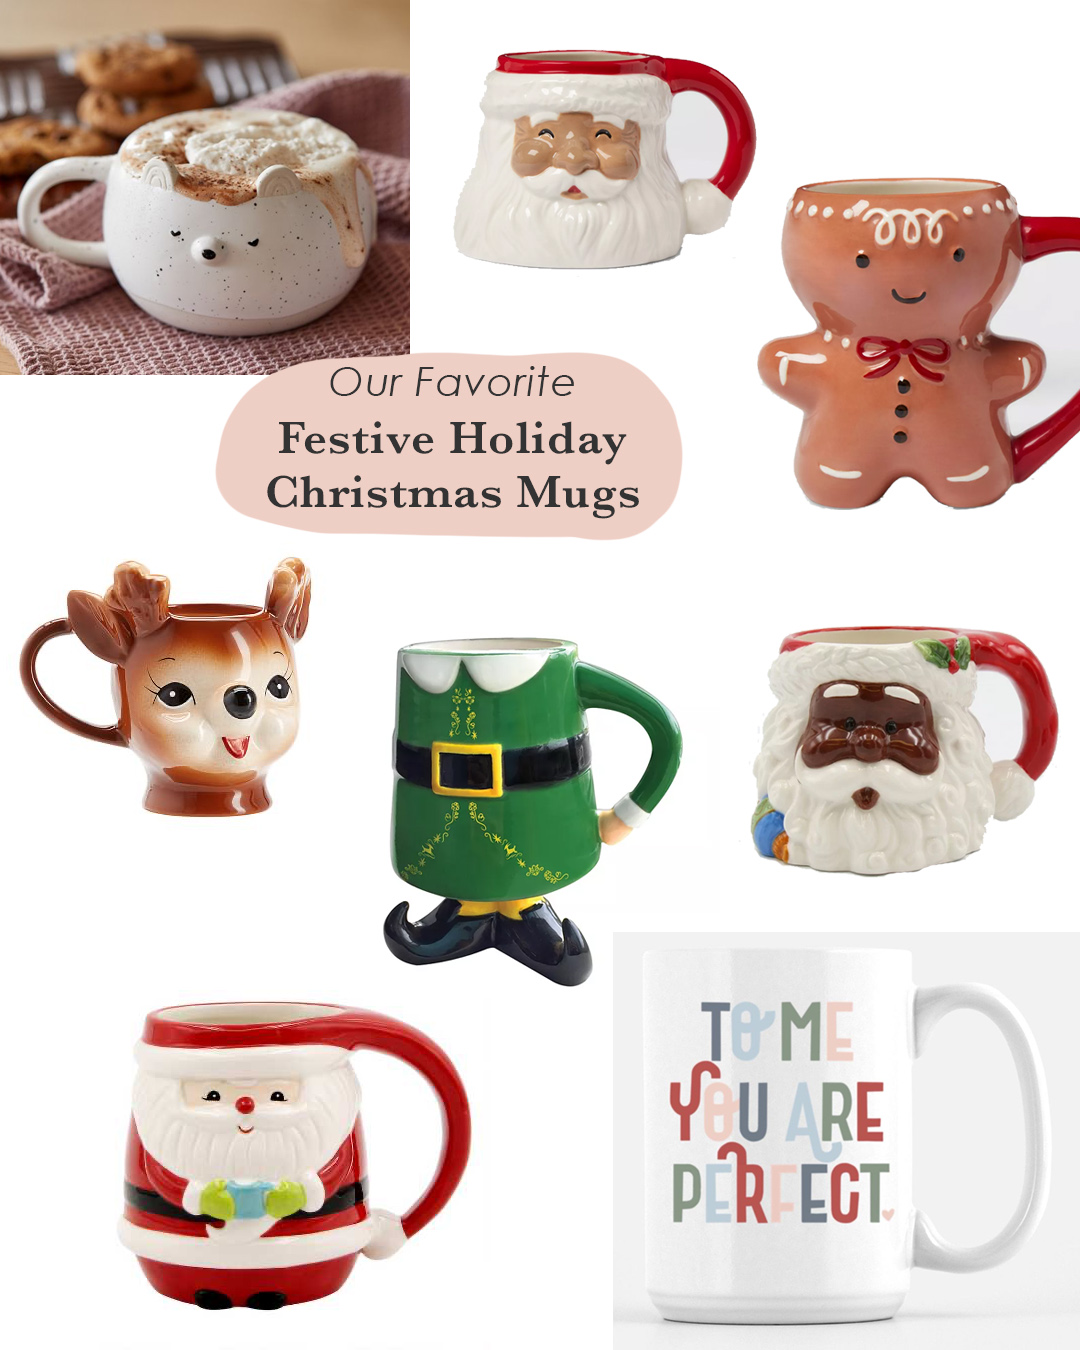 New Festive Holiday Christmas Mugs For An Affordable Gift Idea Green Wedding Shoes